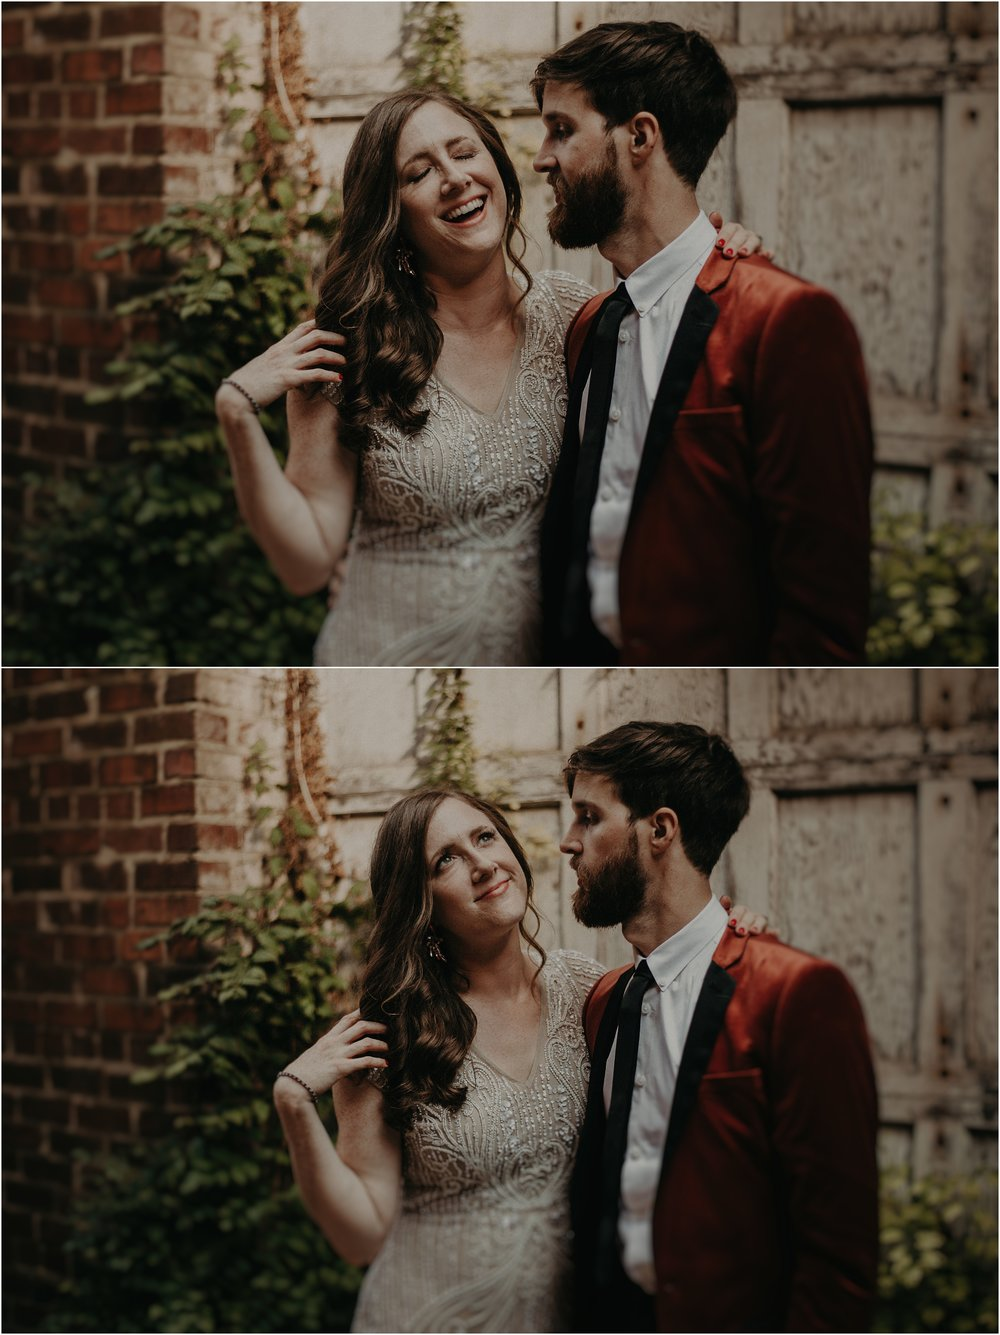 The groom makes his bride laugh